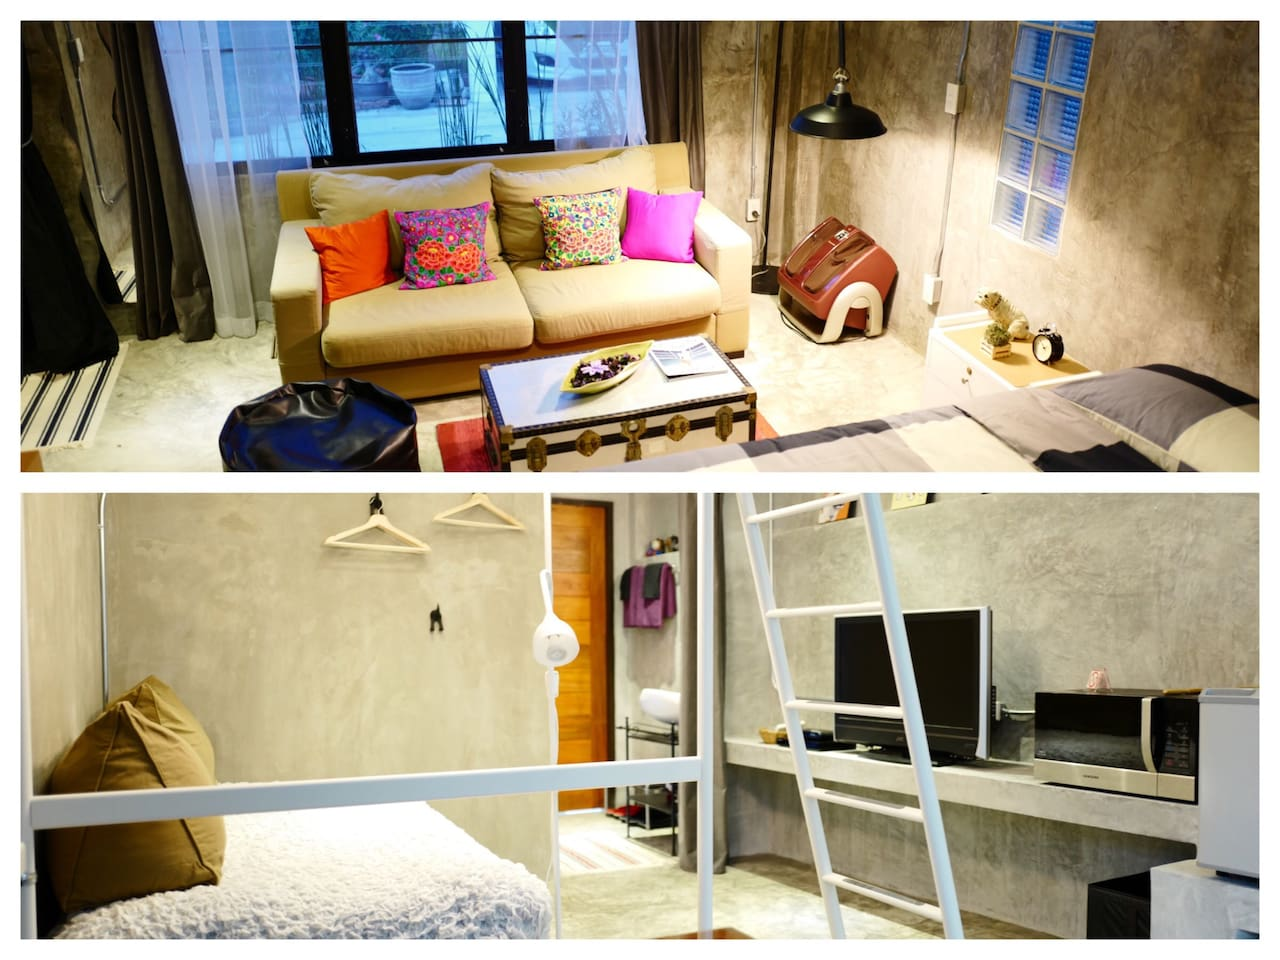 2 studios conveniently near each each other for accommodating a group of up to 7 people traveling together.